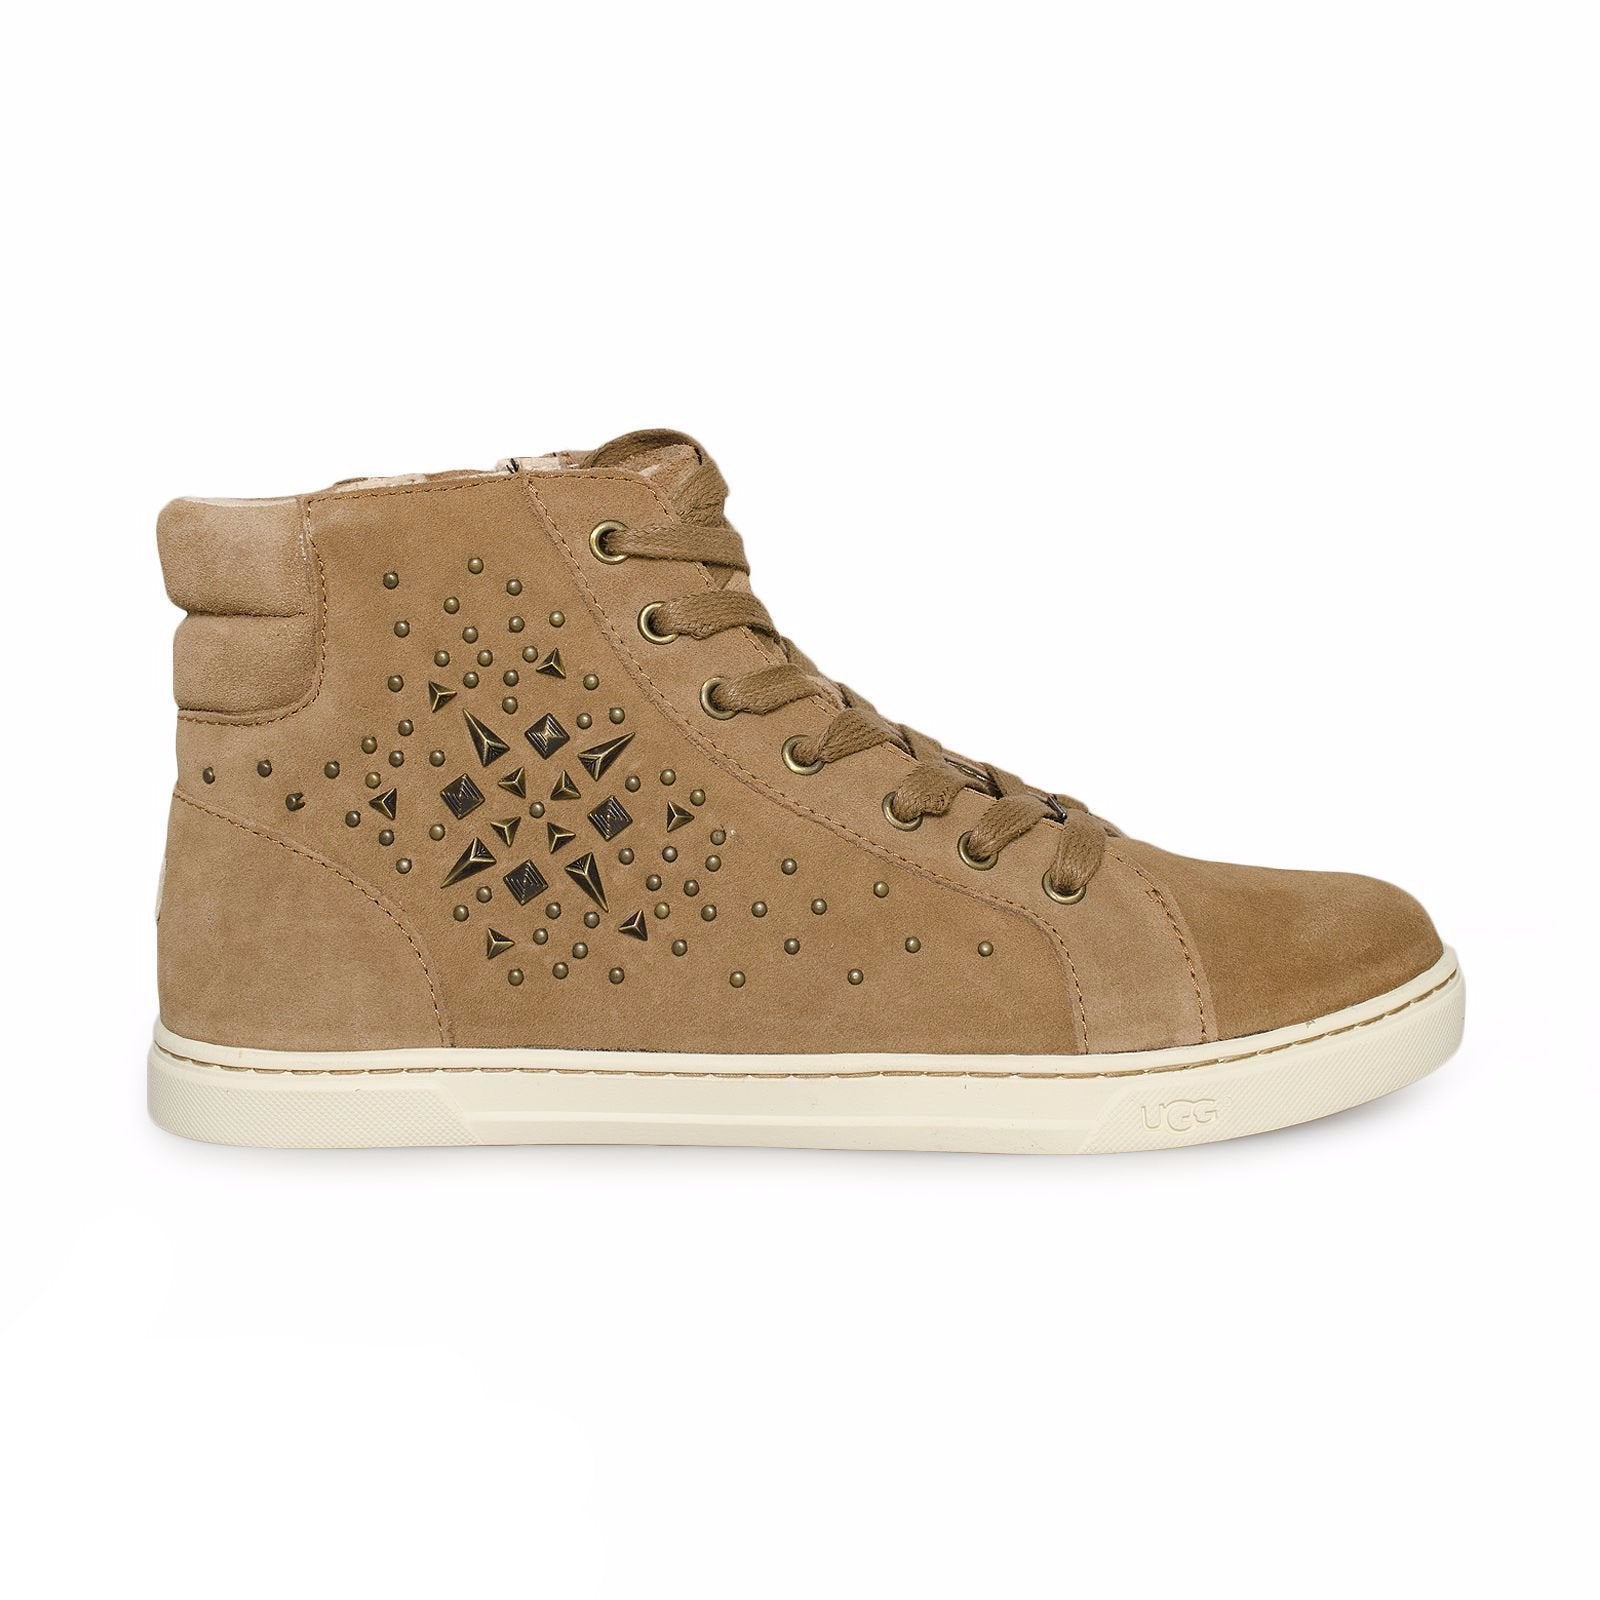 UGG Gradie Deco Studs Chestnut Shoes